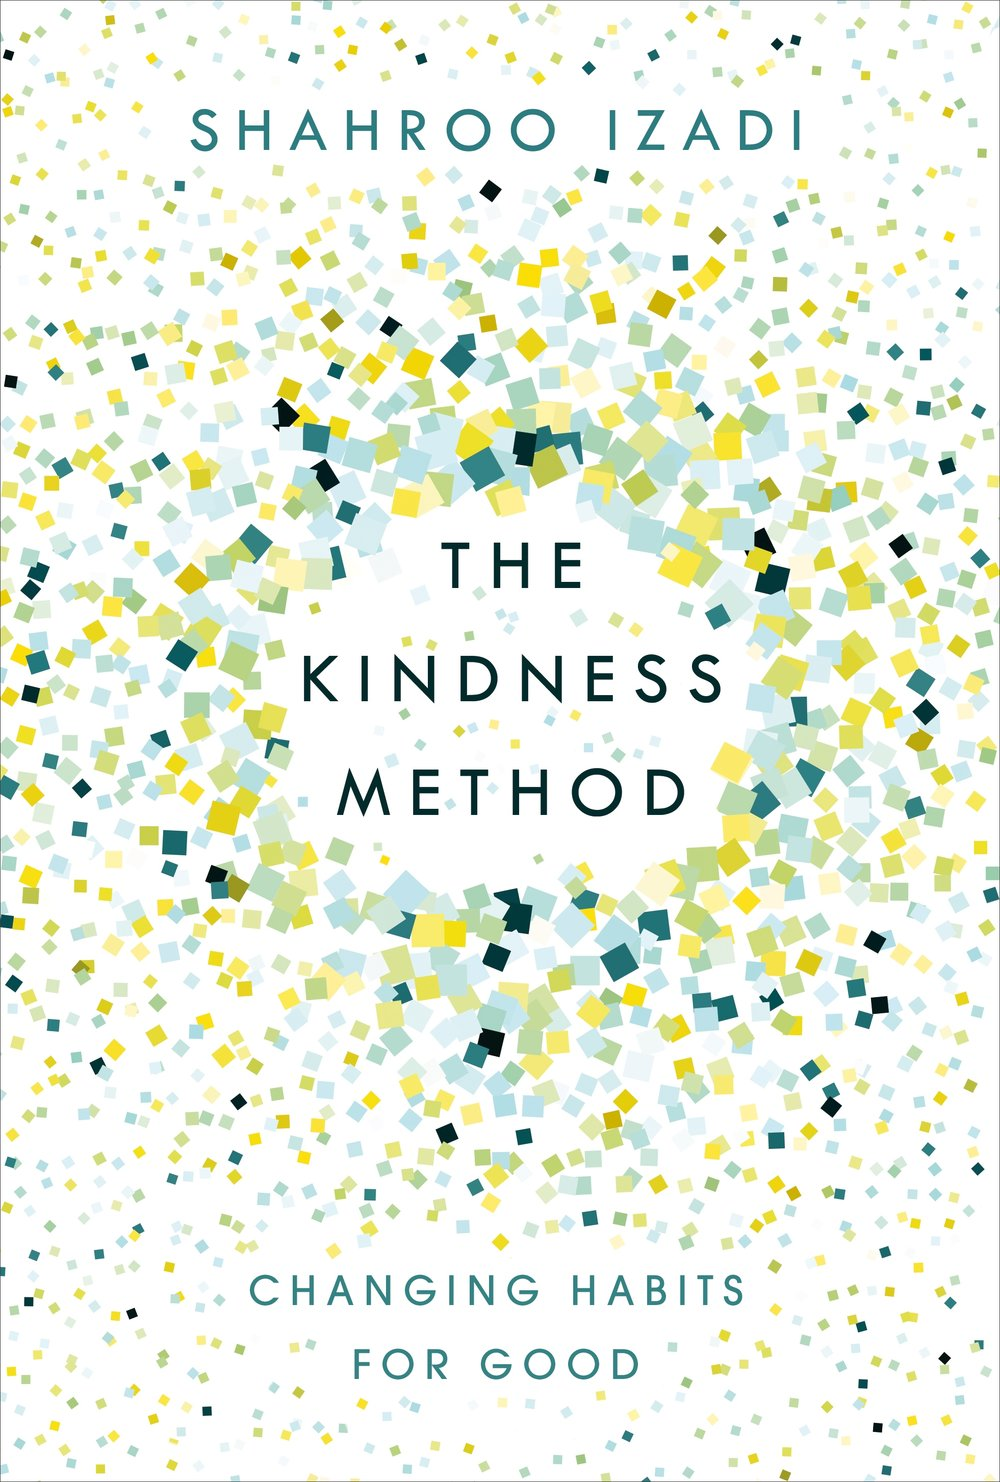 The Kindness Method - By Shahroo Izadi